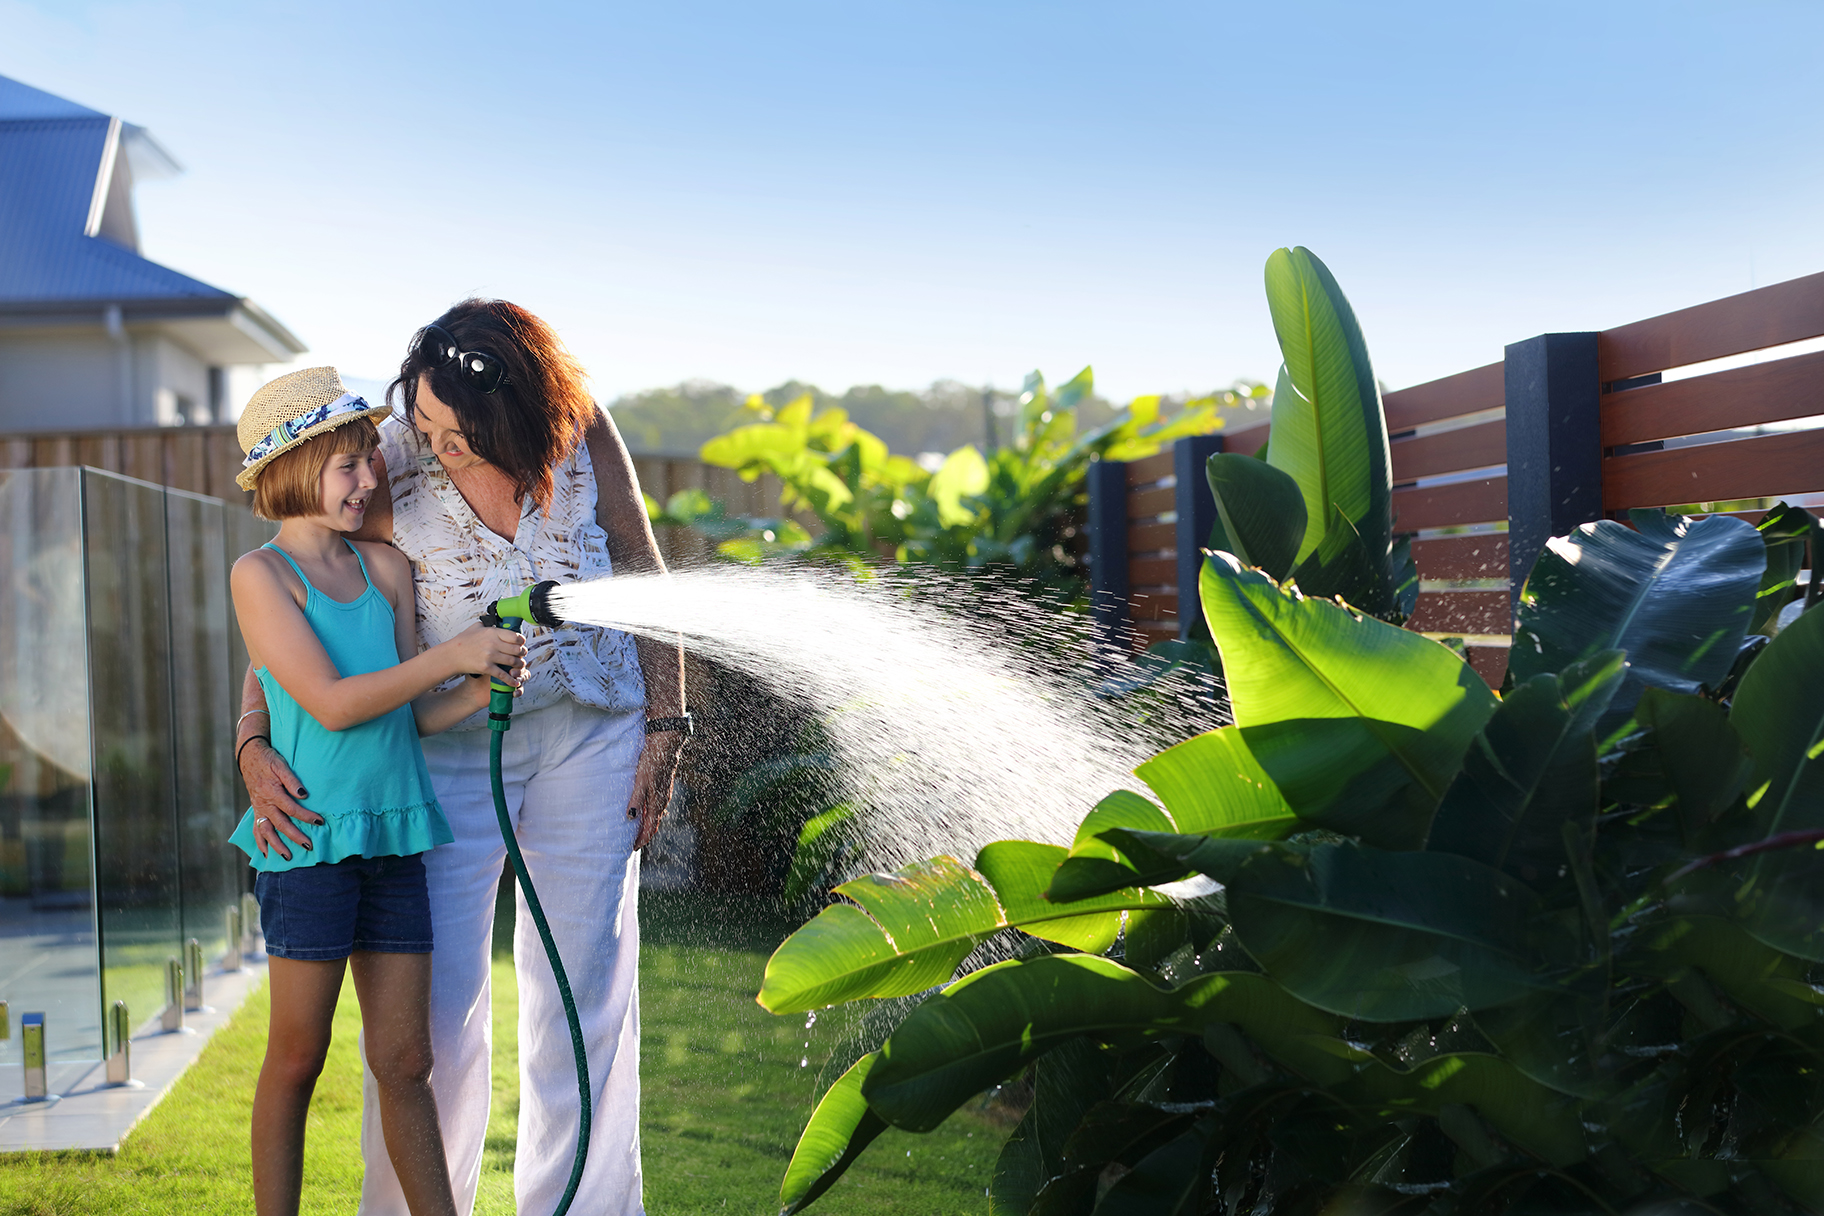 Woman and girl watering residential garden with hose